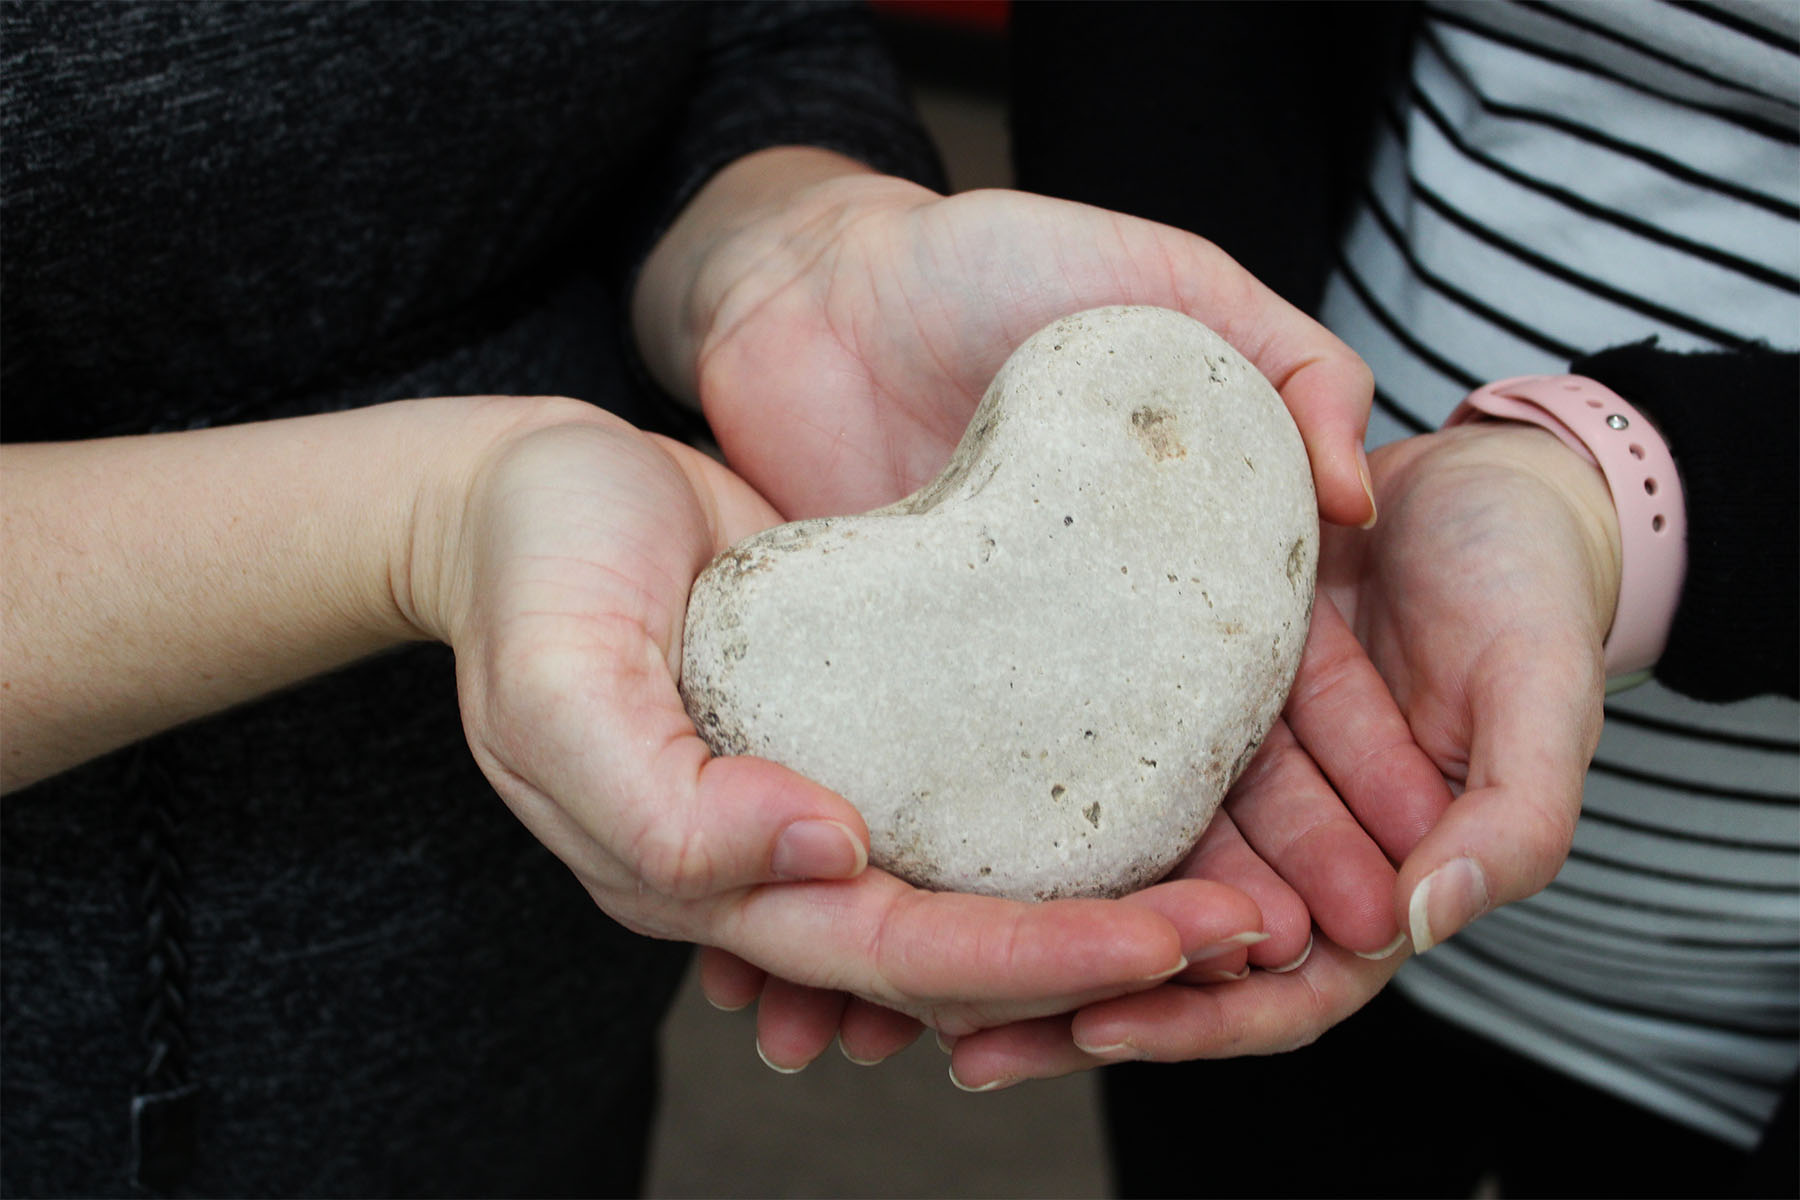 Hands holding a heart-shaped rock